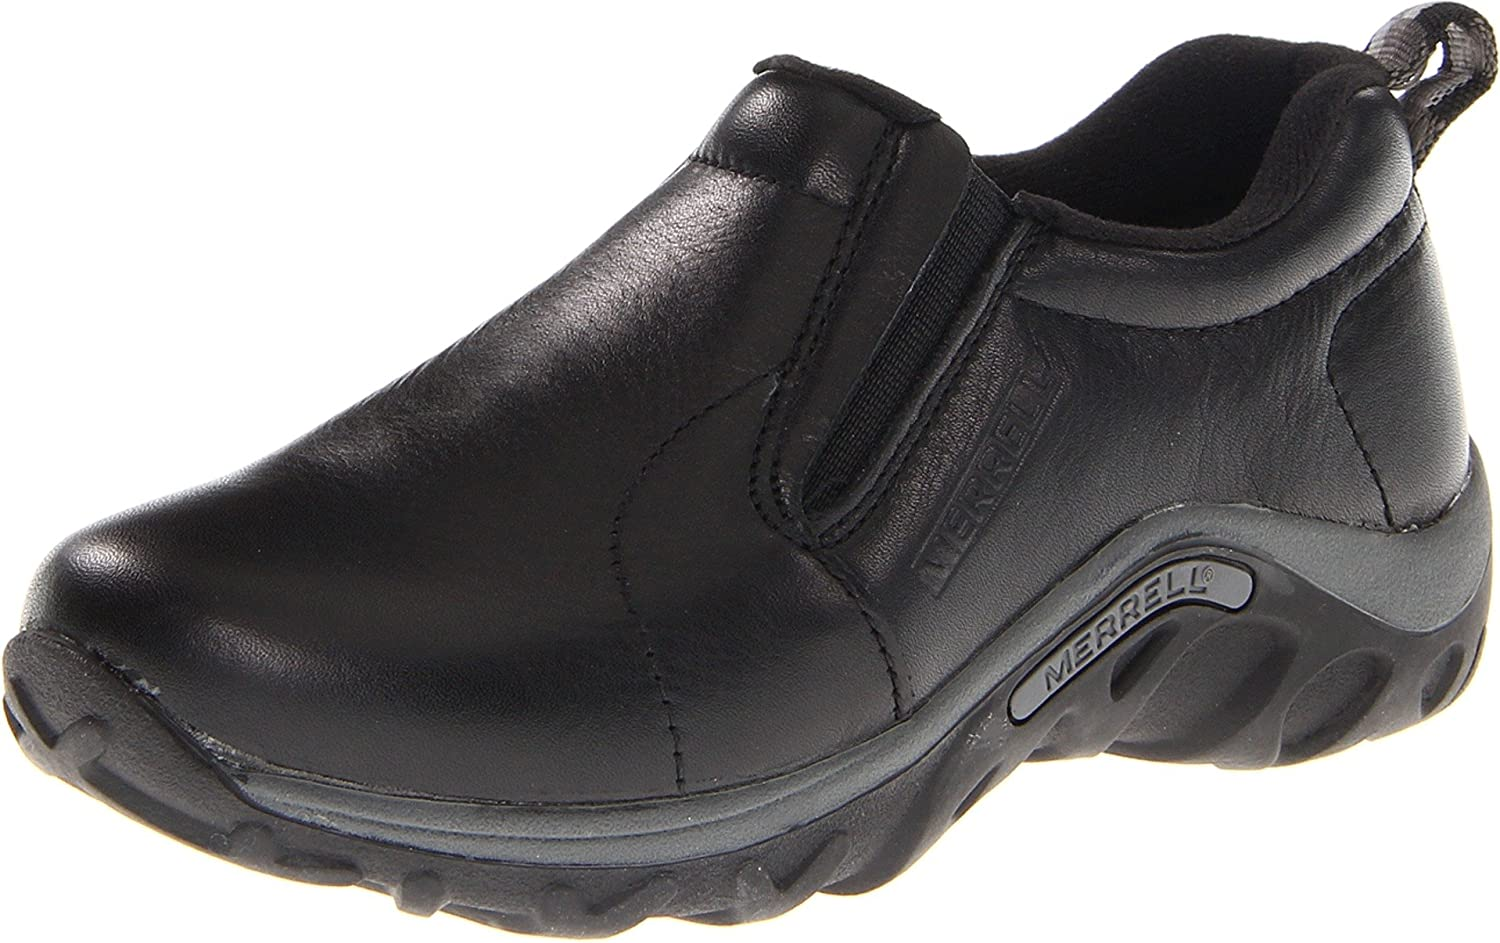 Merrell Jungle Moc Kids Leather Austin Free shipping anywhere in the nation Mall